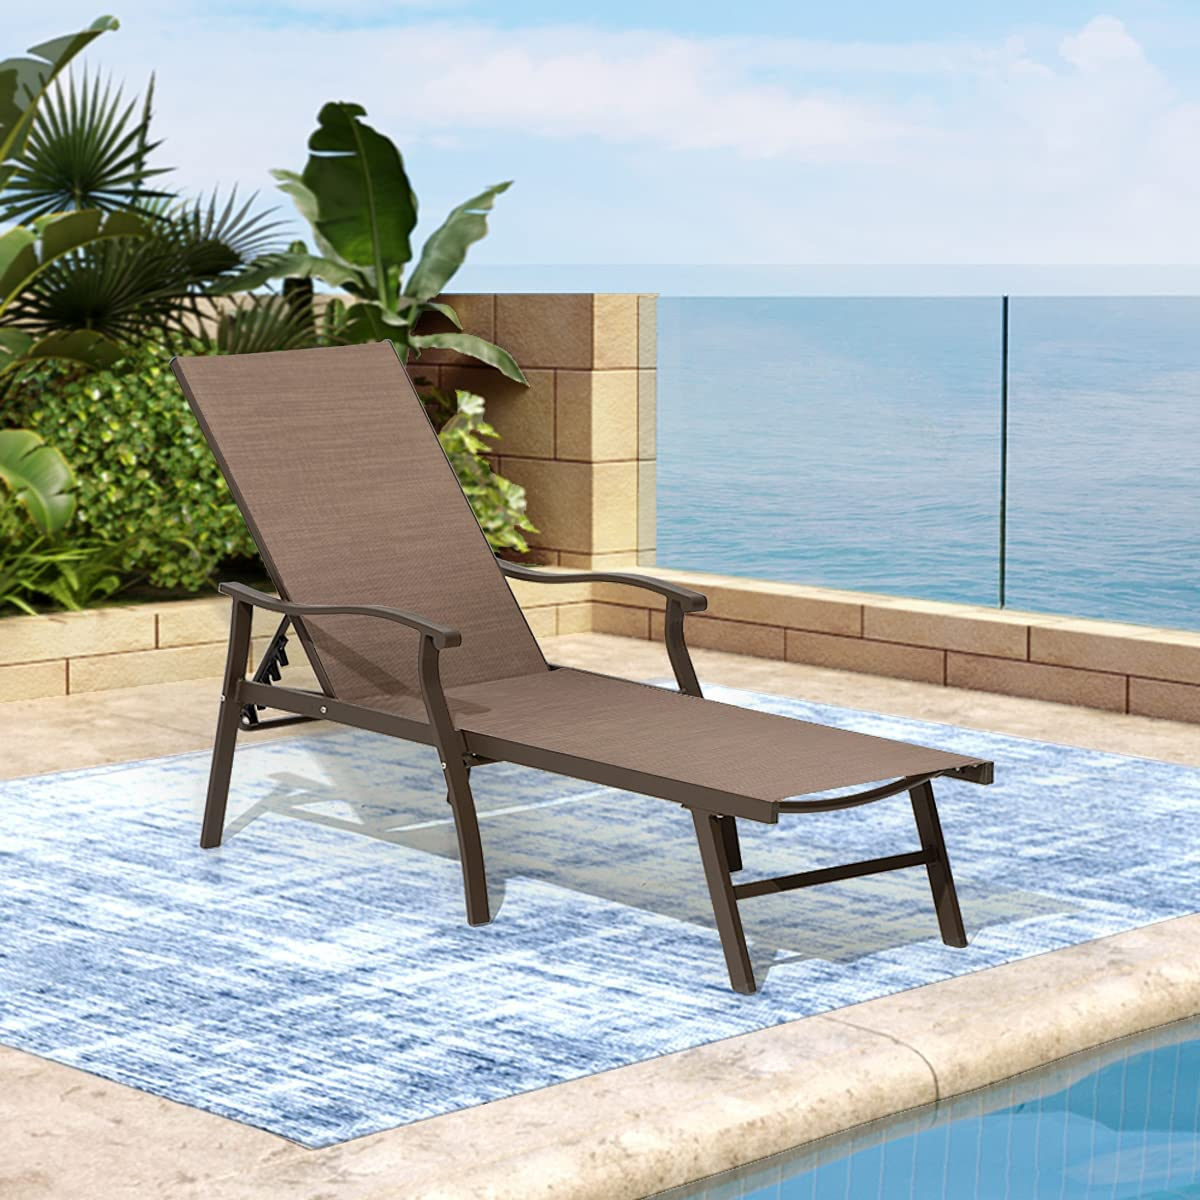 Outdoor Chaise Lounge Chair Adjustable 2021 Seattle Mall spring and summer new Reclining Aluminum Patio